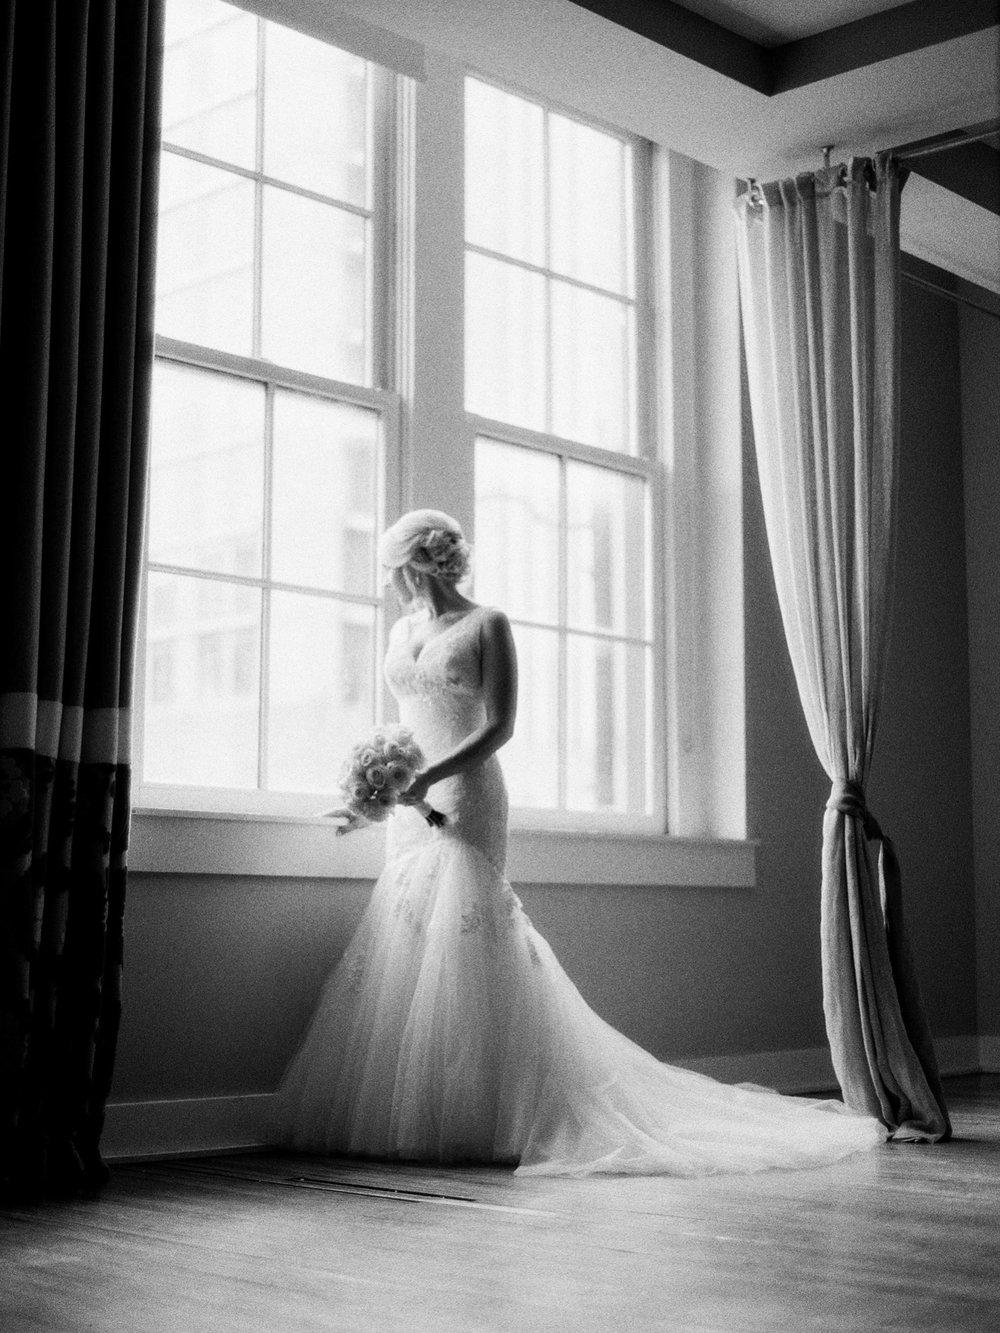 martha stewart wedding_fine art_beautiful bride_birmingham wedding photographer_montgomery alabama wedding photographer_destin rosemary alys beach 30A florida luxury wedding photographer